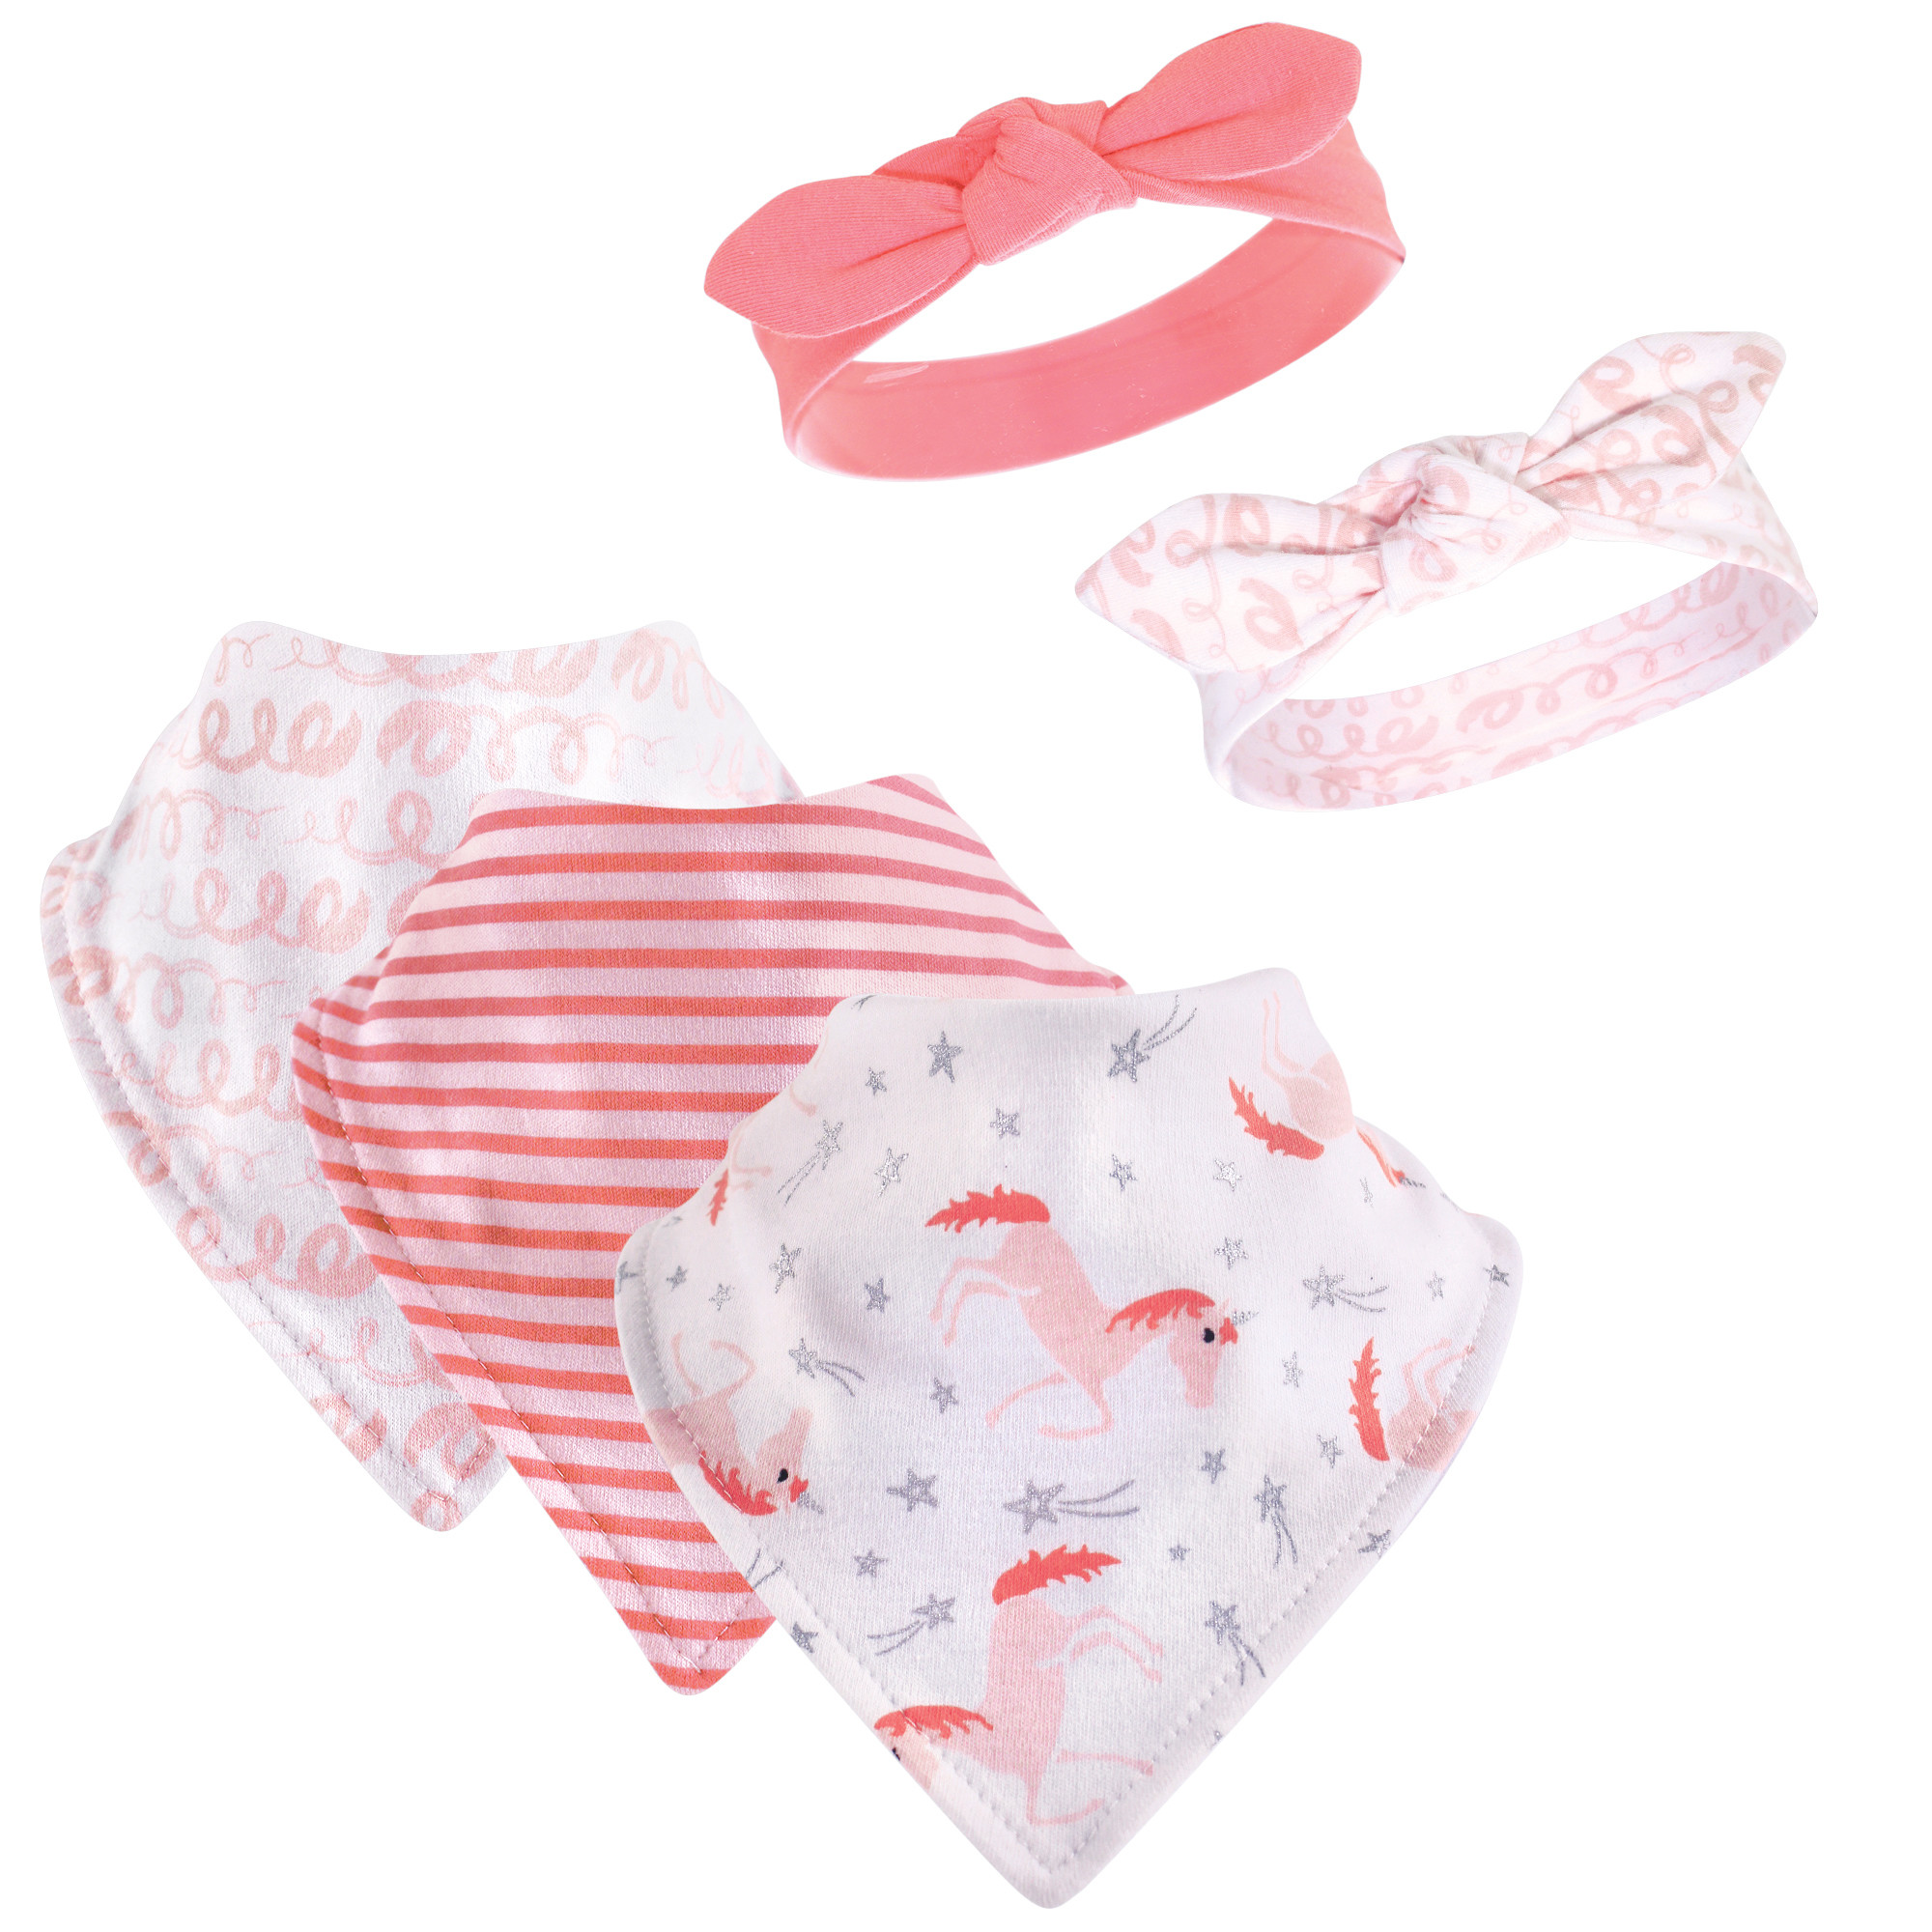 Hudson Baby Baby Girl Bandana Bibs and Headbands, 5-Piece Set, Coral Unicorn